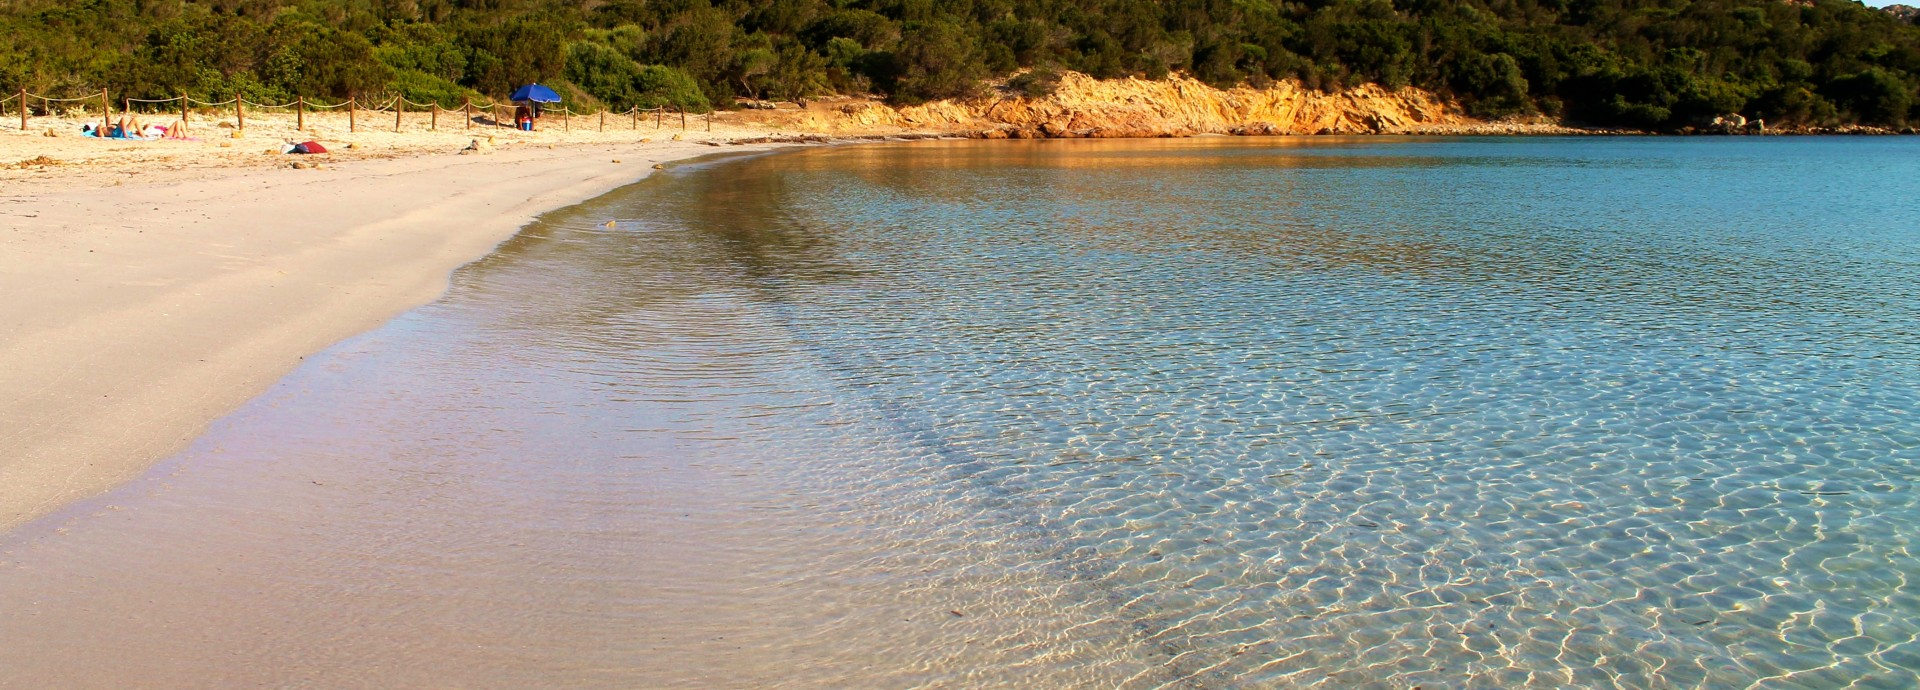 Beach on South East Caprera, Sardinia, Italy